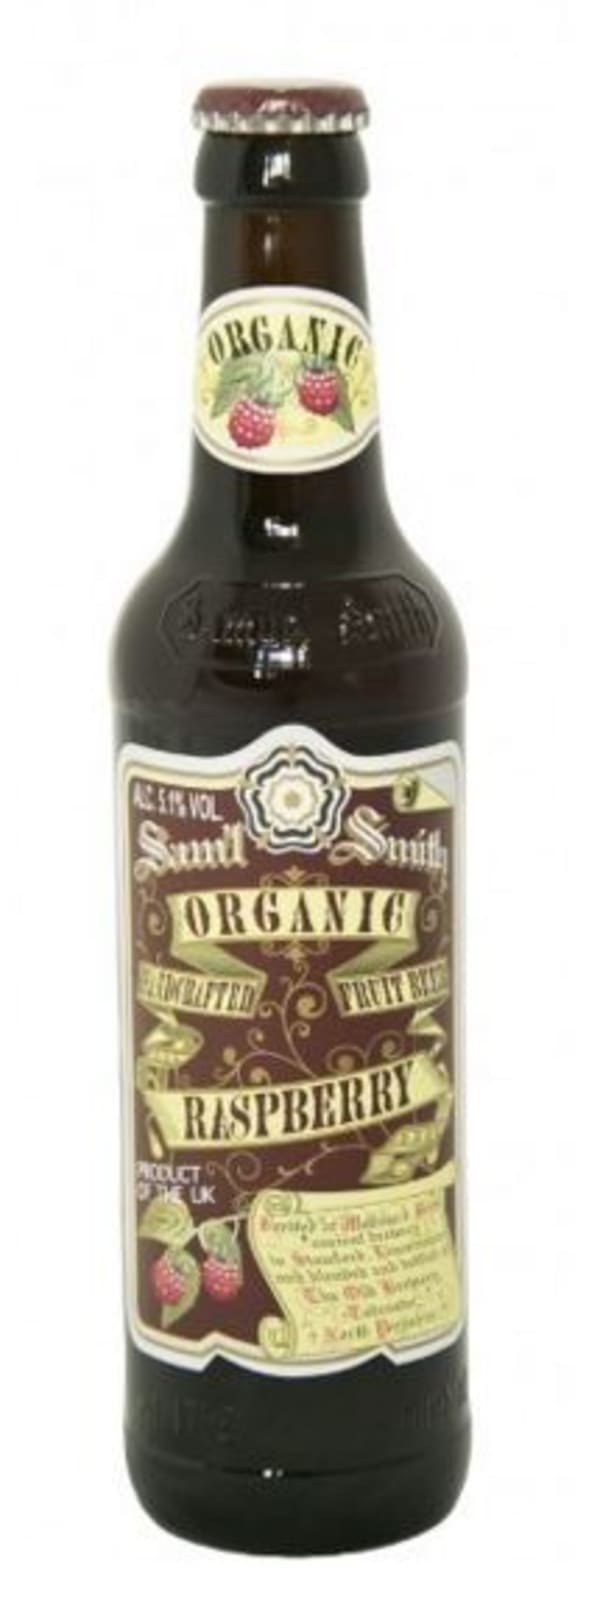 Samuel Smith Organic Raspberry